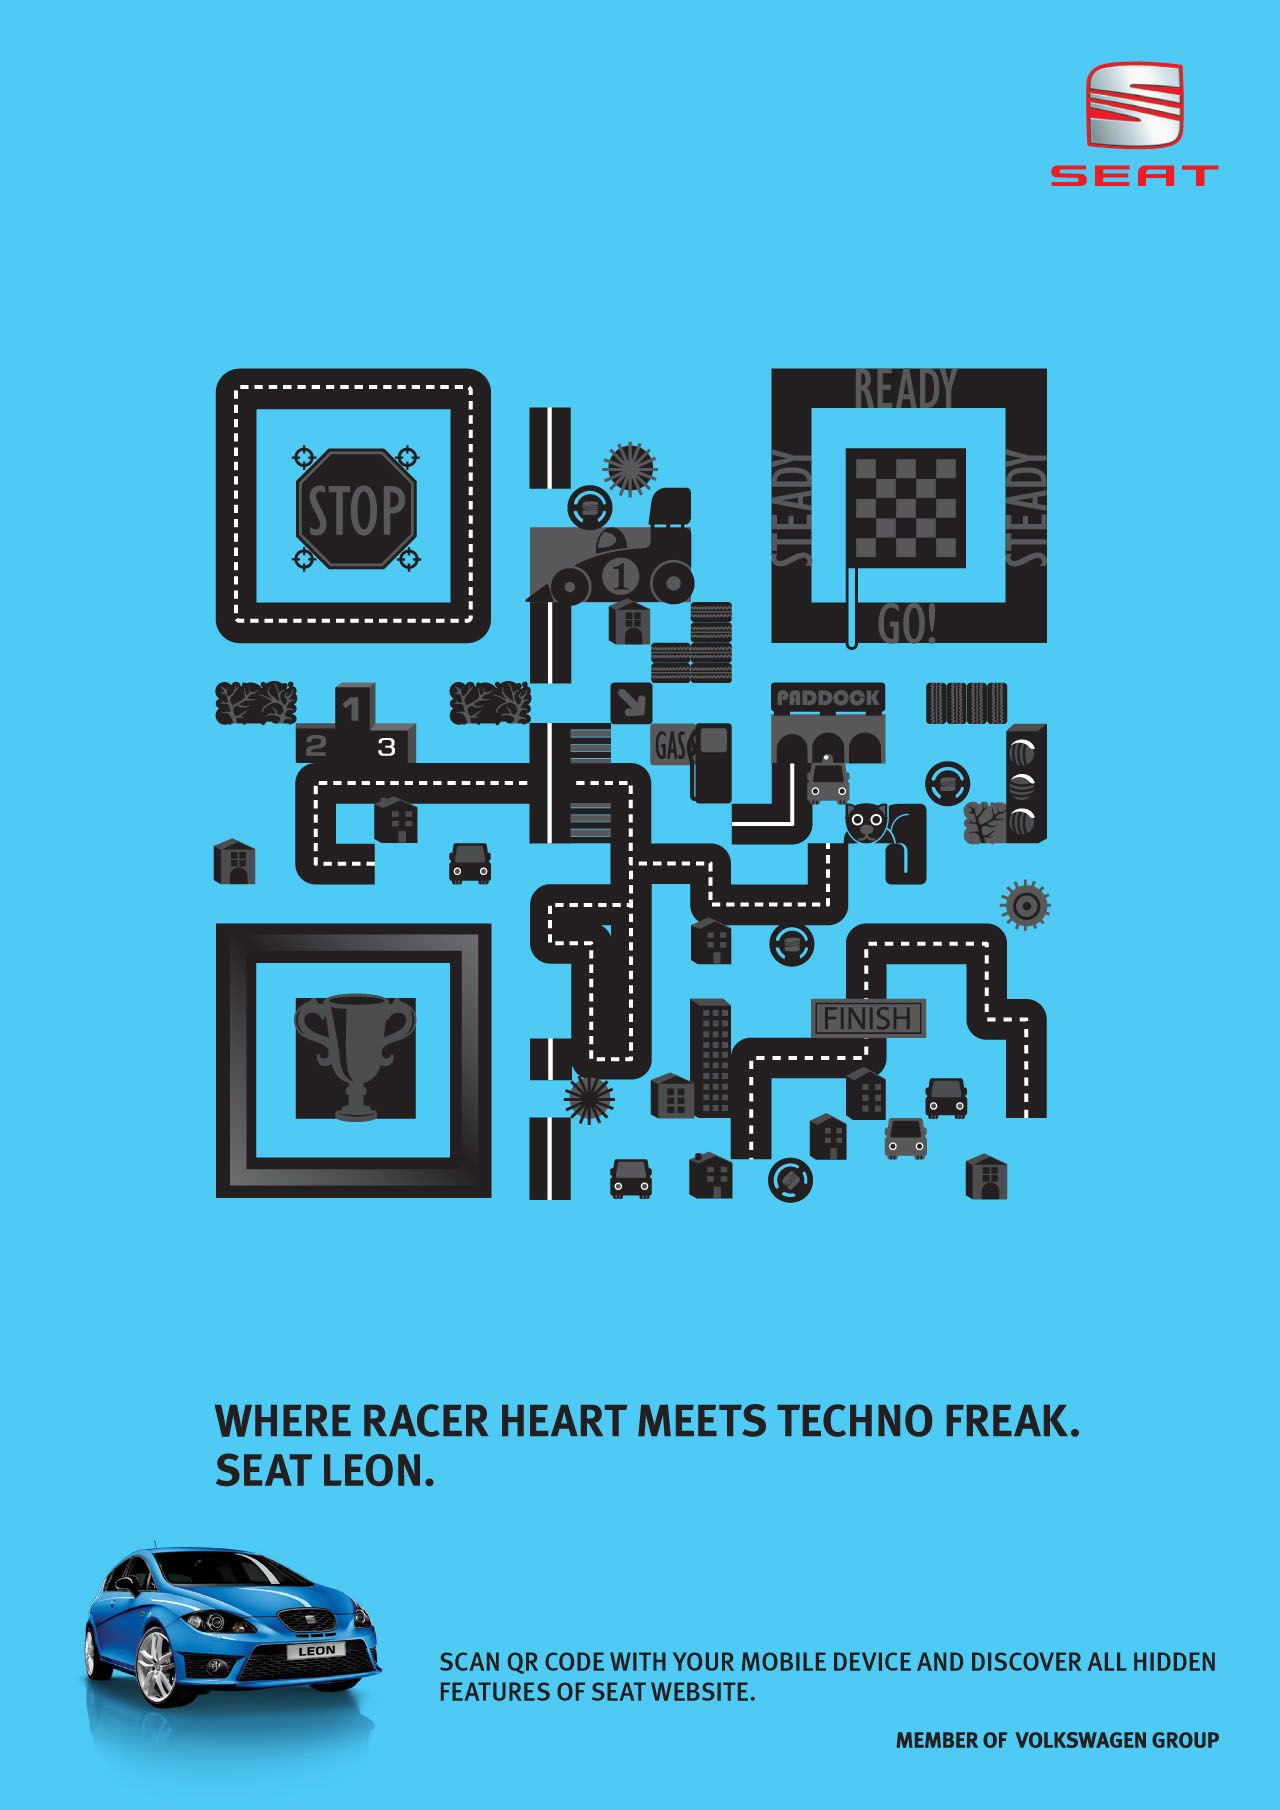 Seat Leon Qr Code Ads Of The World Funny Commercial Ads Qr Code Coding